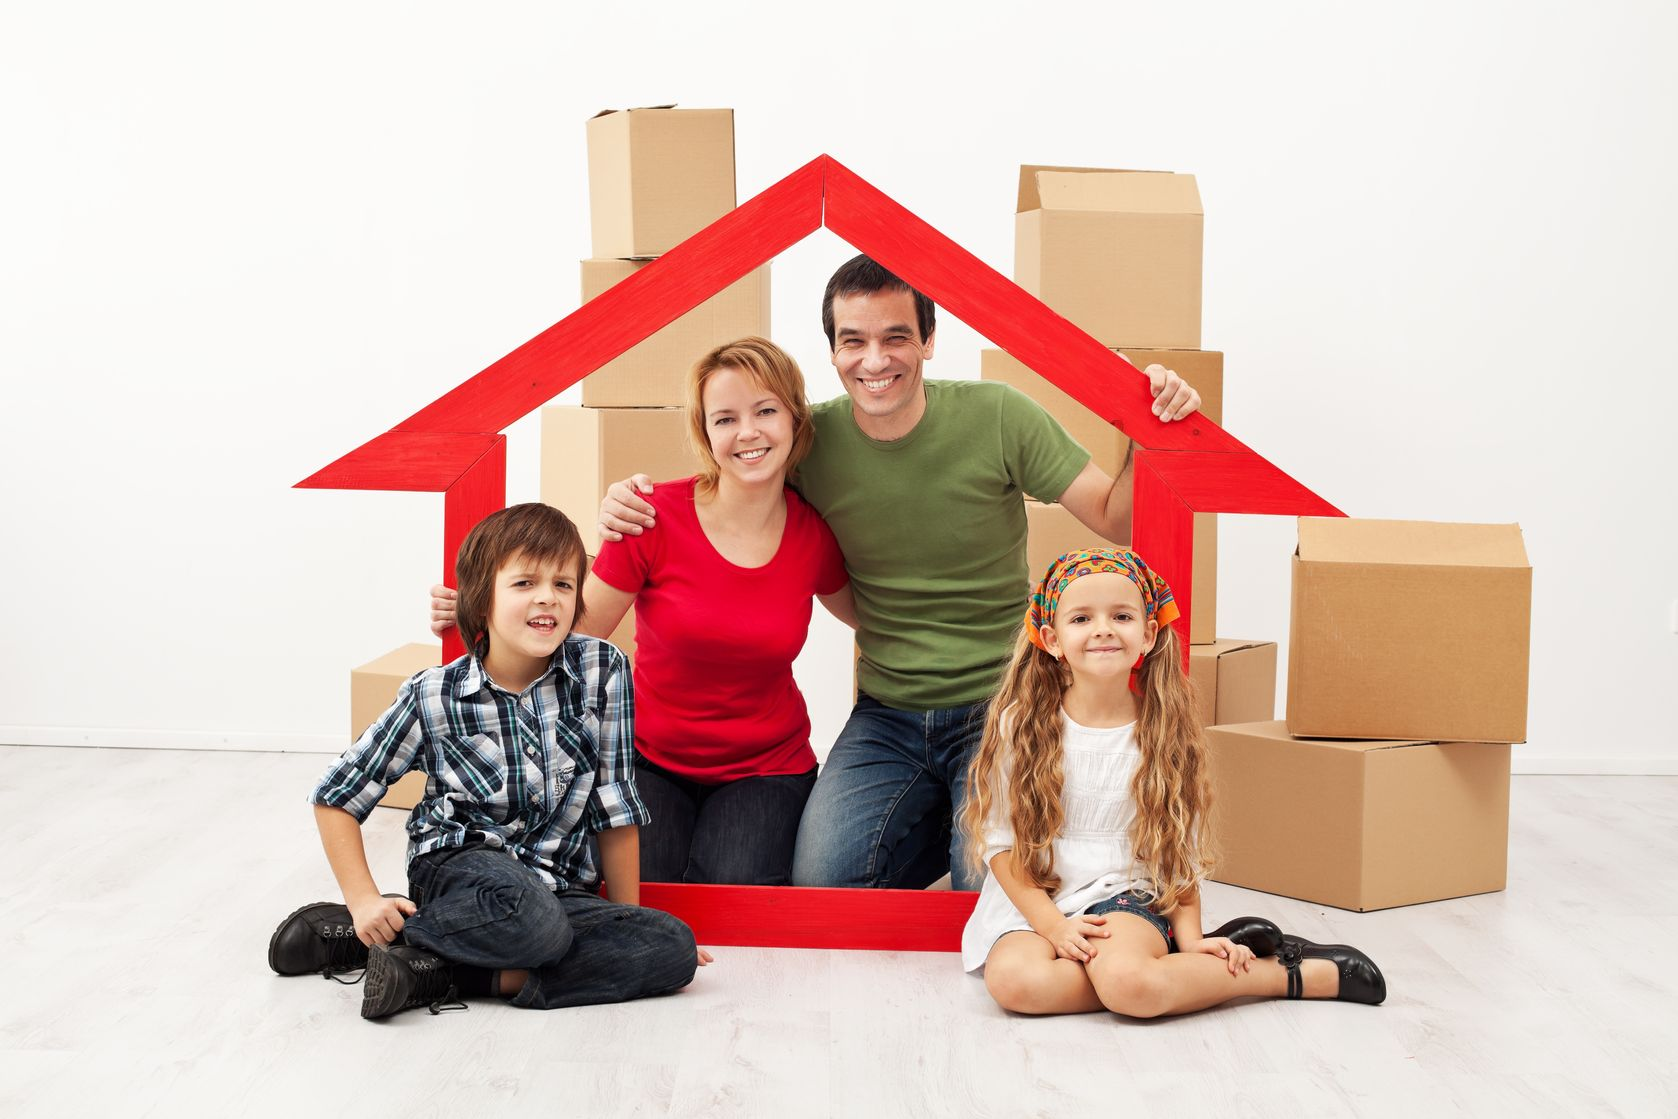 Ft Lauderdale Homeowners Insurance